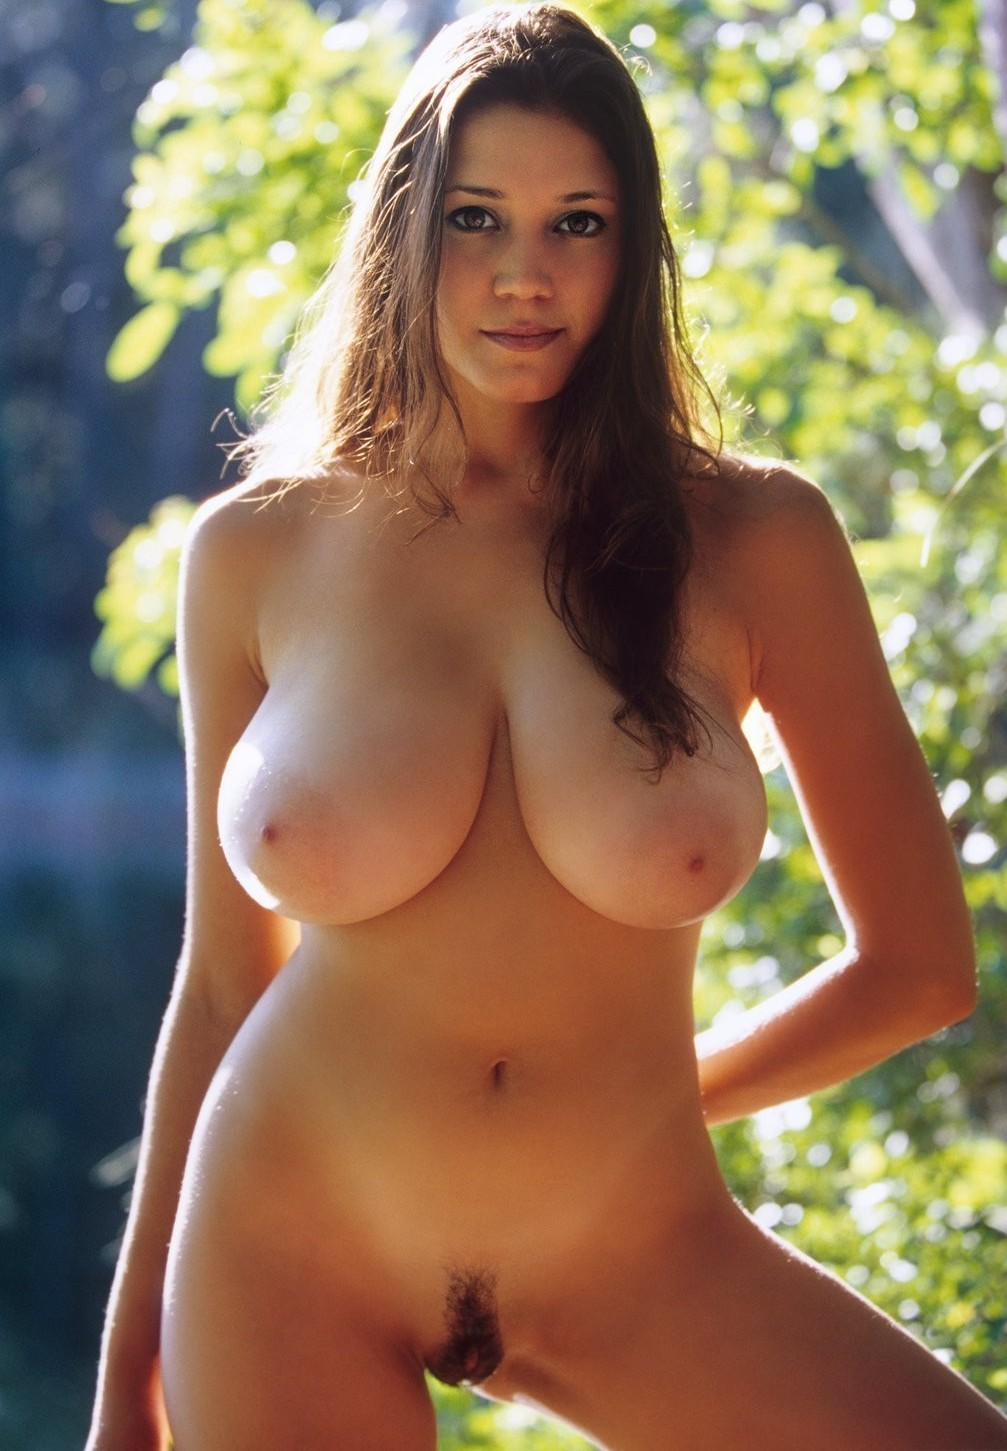 huge-boobs-tits-naked-mix-vol5-26